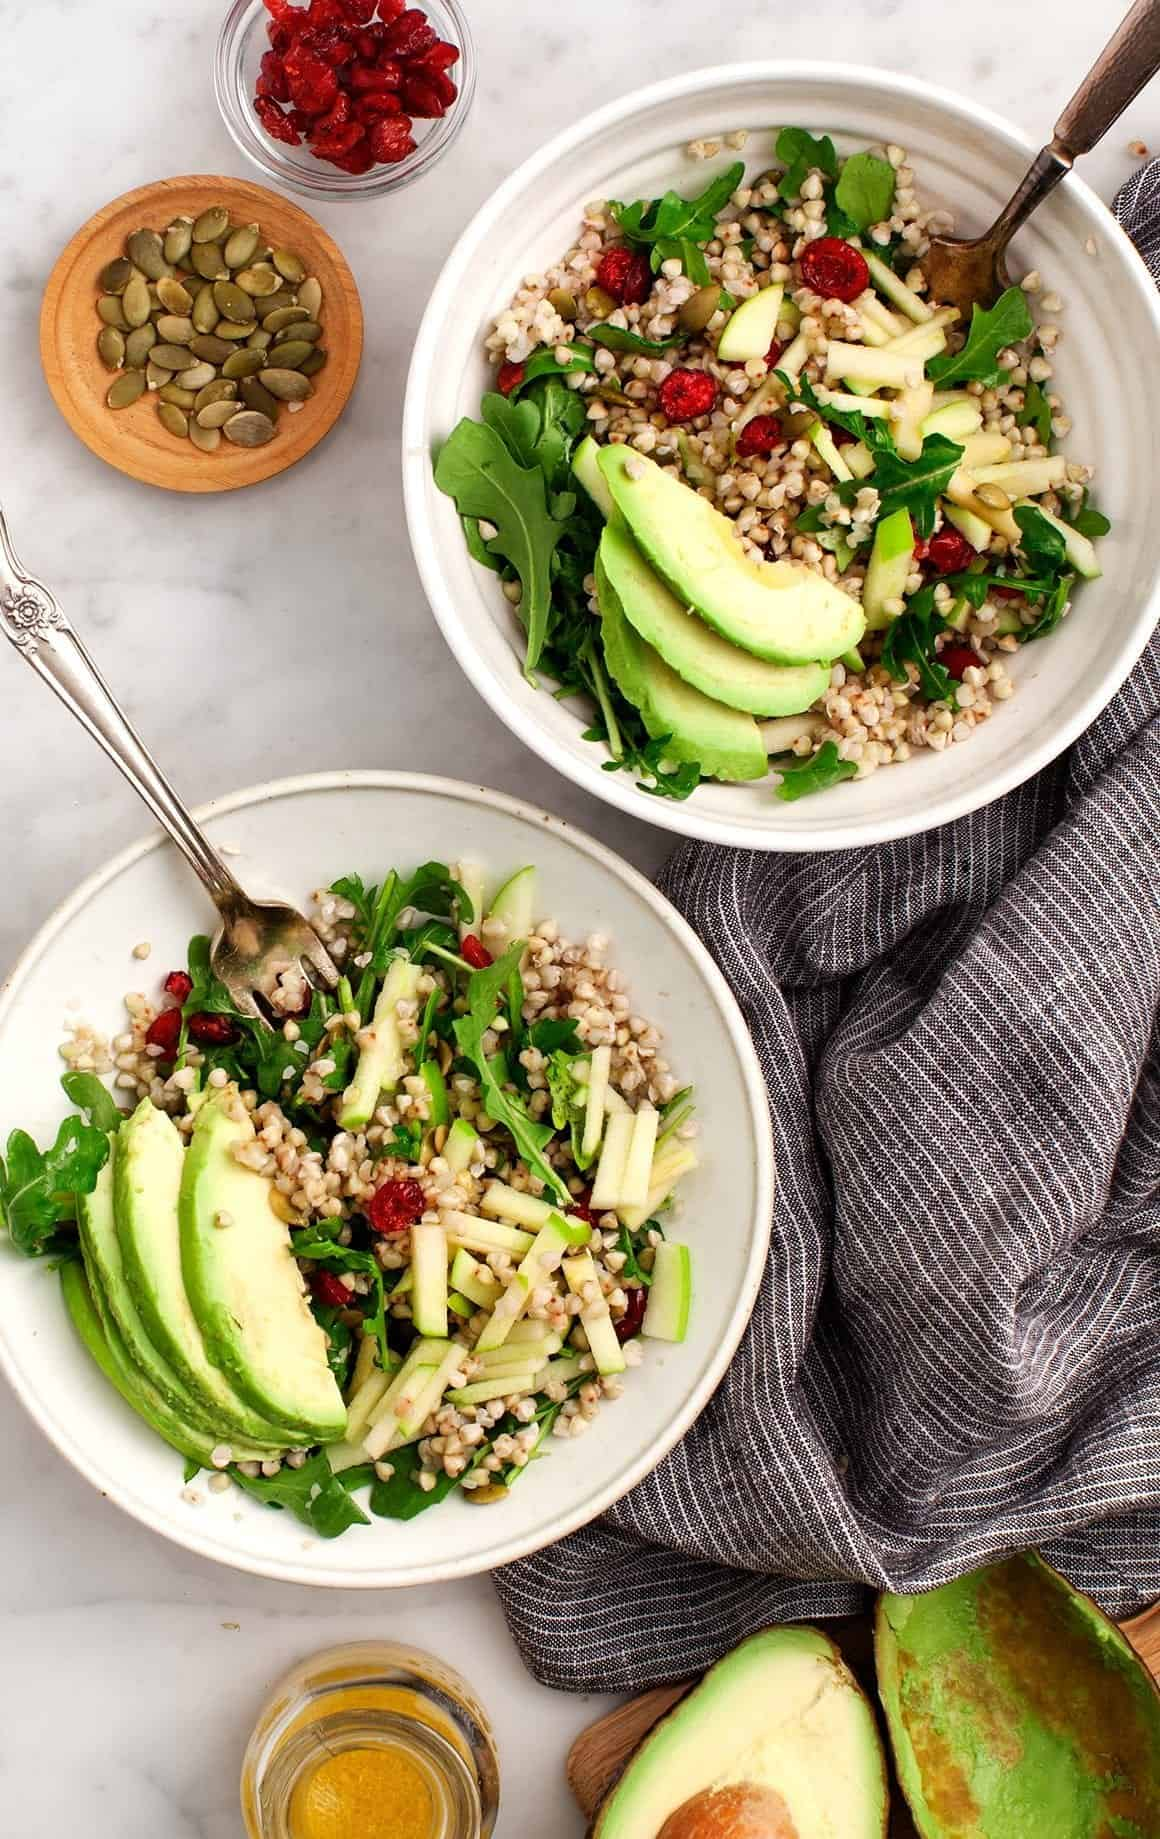 Buckwheat, Apple, Cranberry Avocado Salad